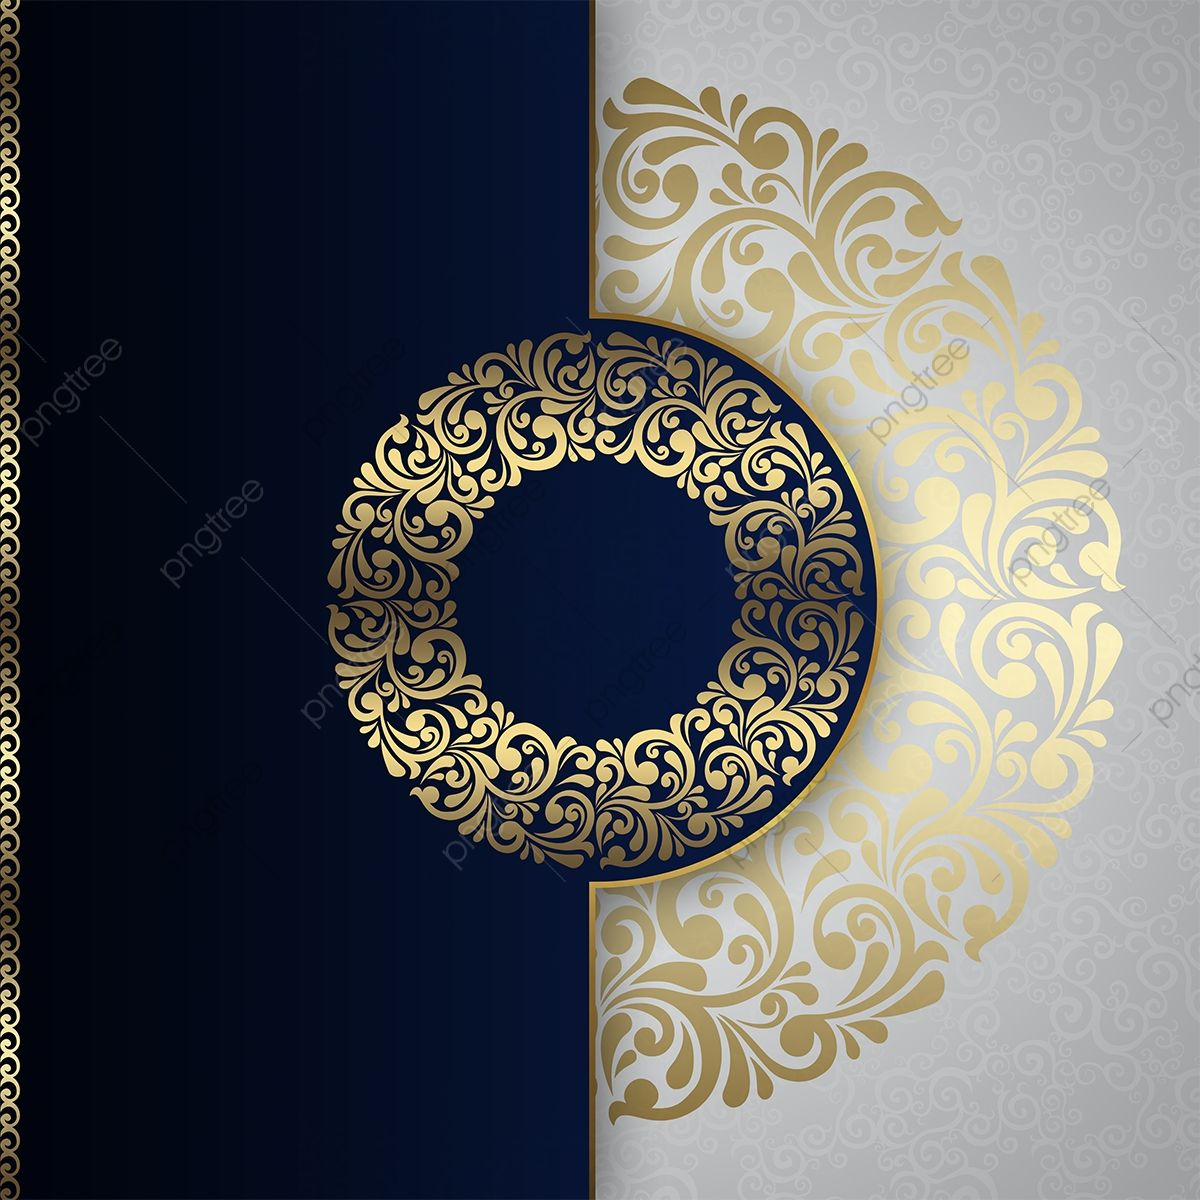 Awesome Luxury Invitation Template Luxury Date Invitation Card Png Transparent Clipart Image And Psd File For Free Download Pattern Art Islamic Art Pattern Card Design